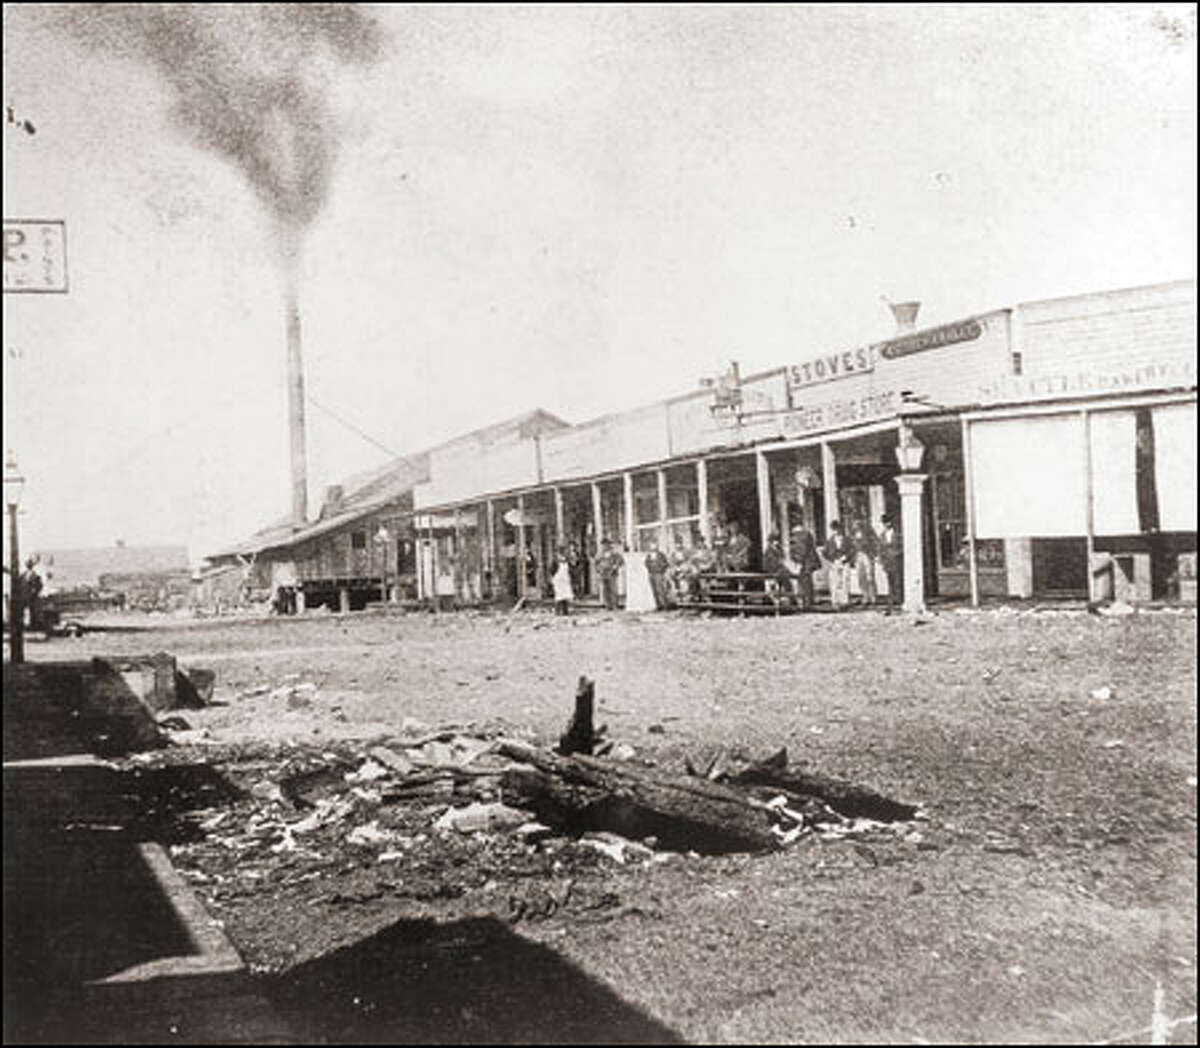 Henry Yesler's sawmill and commercial buildings at Front Street (now First Avenue) and James Street in the 1870s. The mill provided Seattle's first salaried jobs.